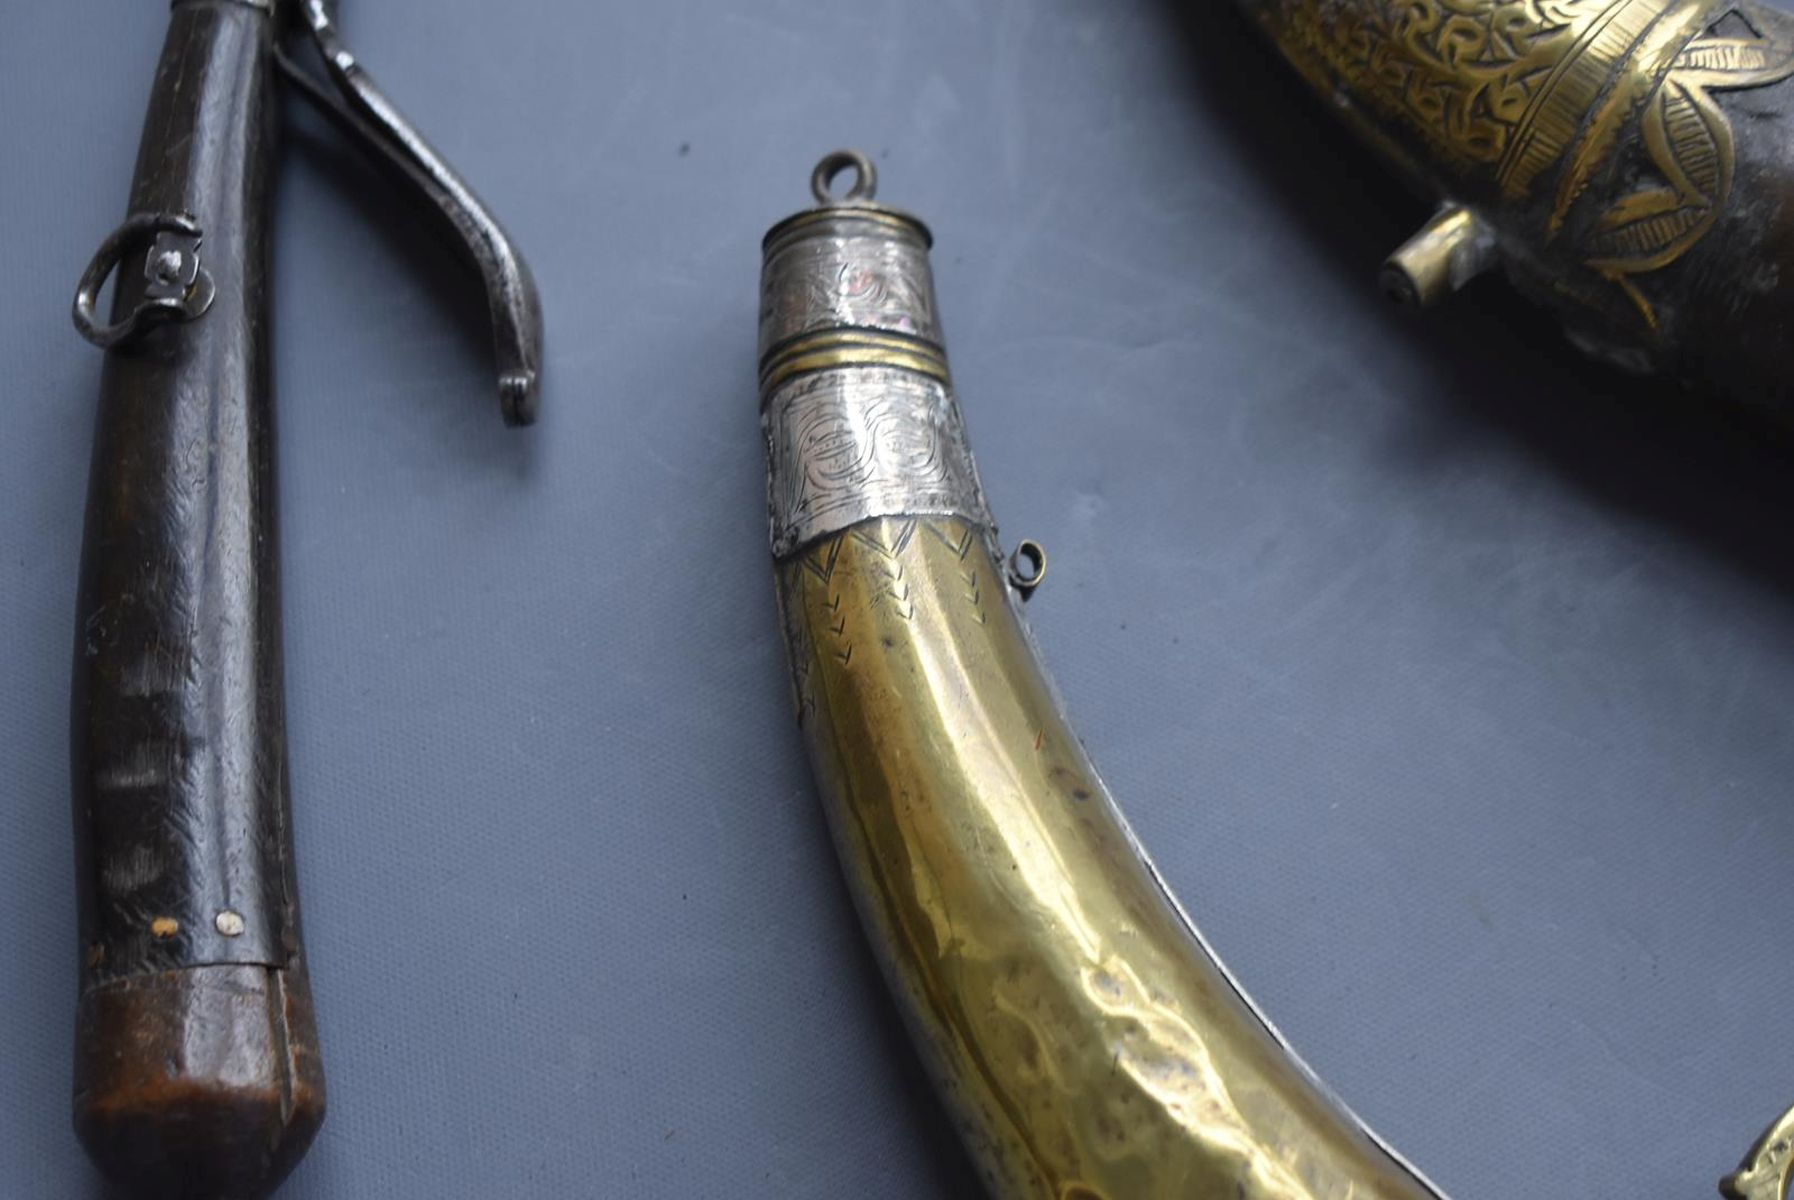 THREE VARIOUS NORTH AFRICAN POWDER HORNS, each of natural curving form with ornate brass mounts, - Image 8 of 11